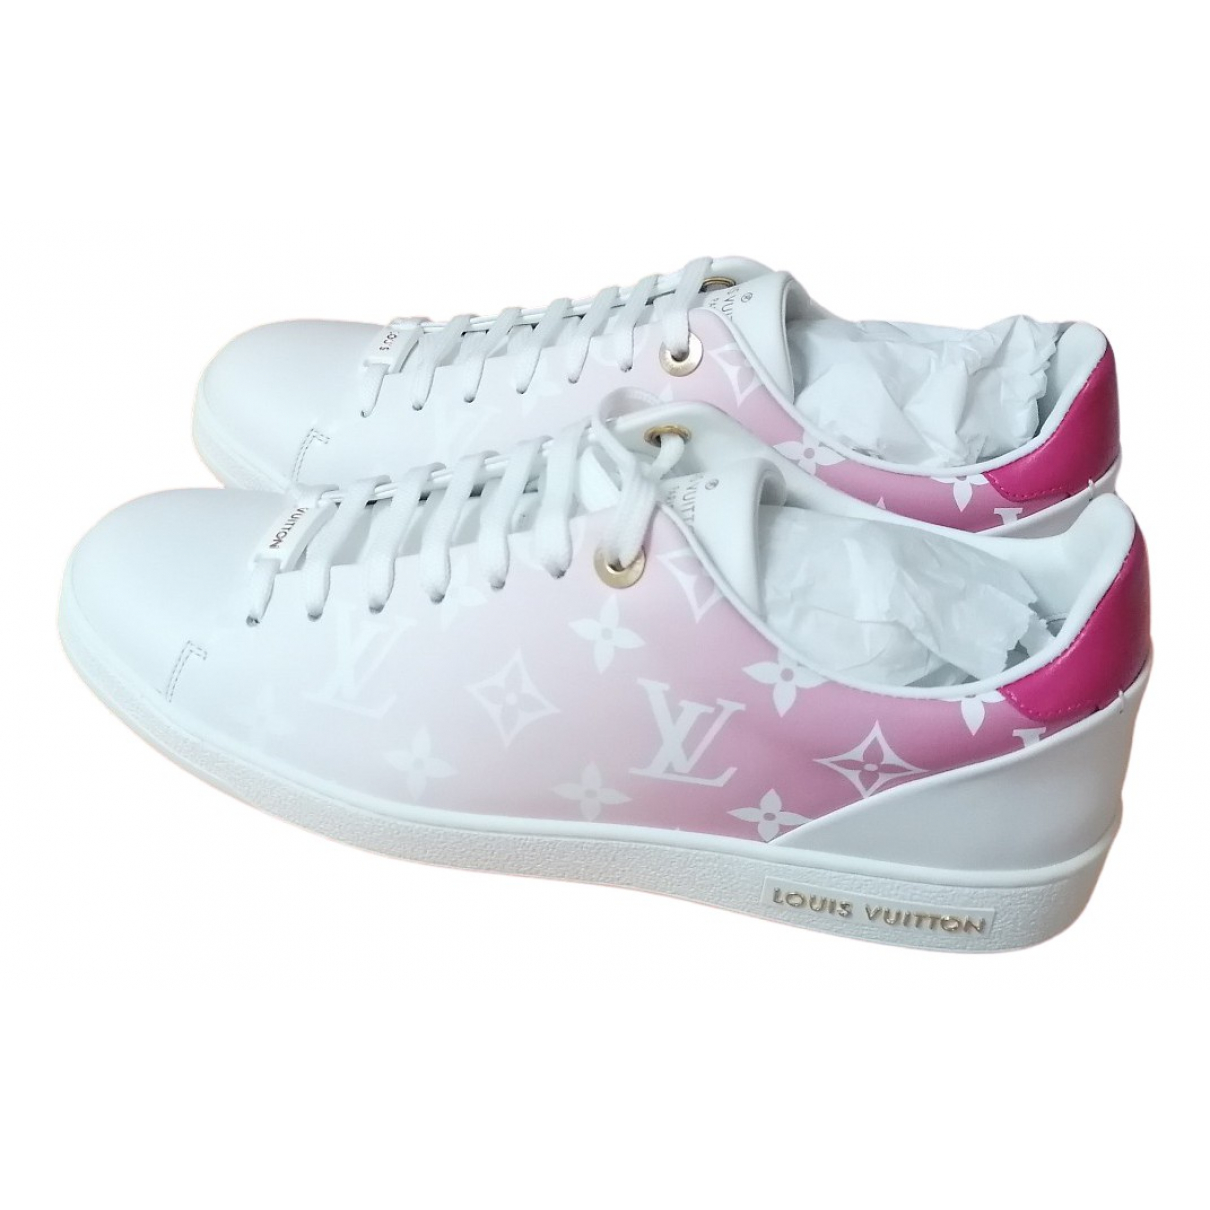 Louis Vuitton FrontRow Sneakers in  Rosa Leder